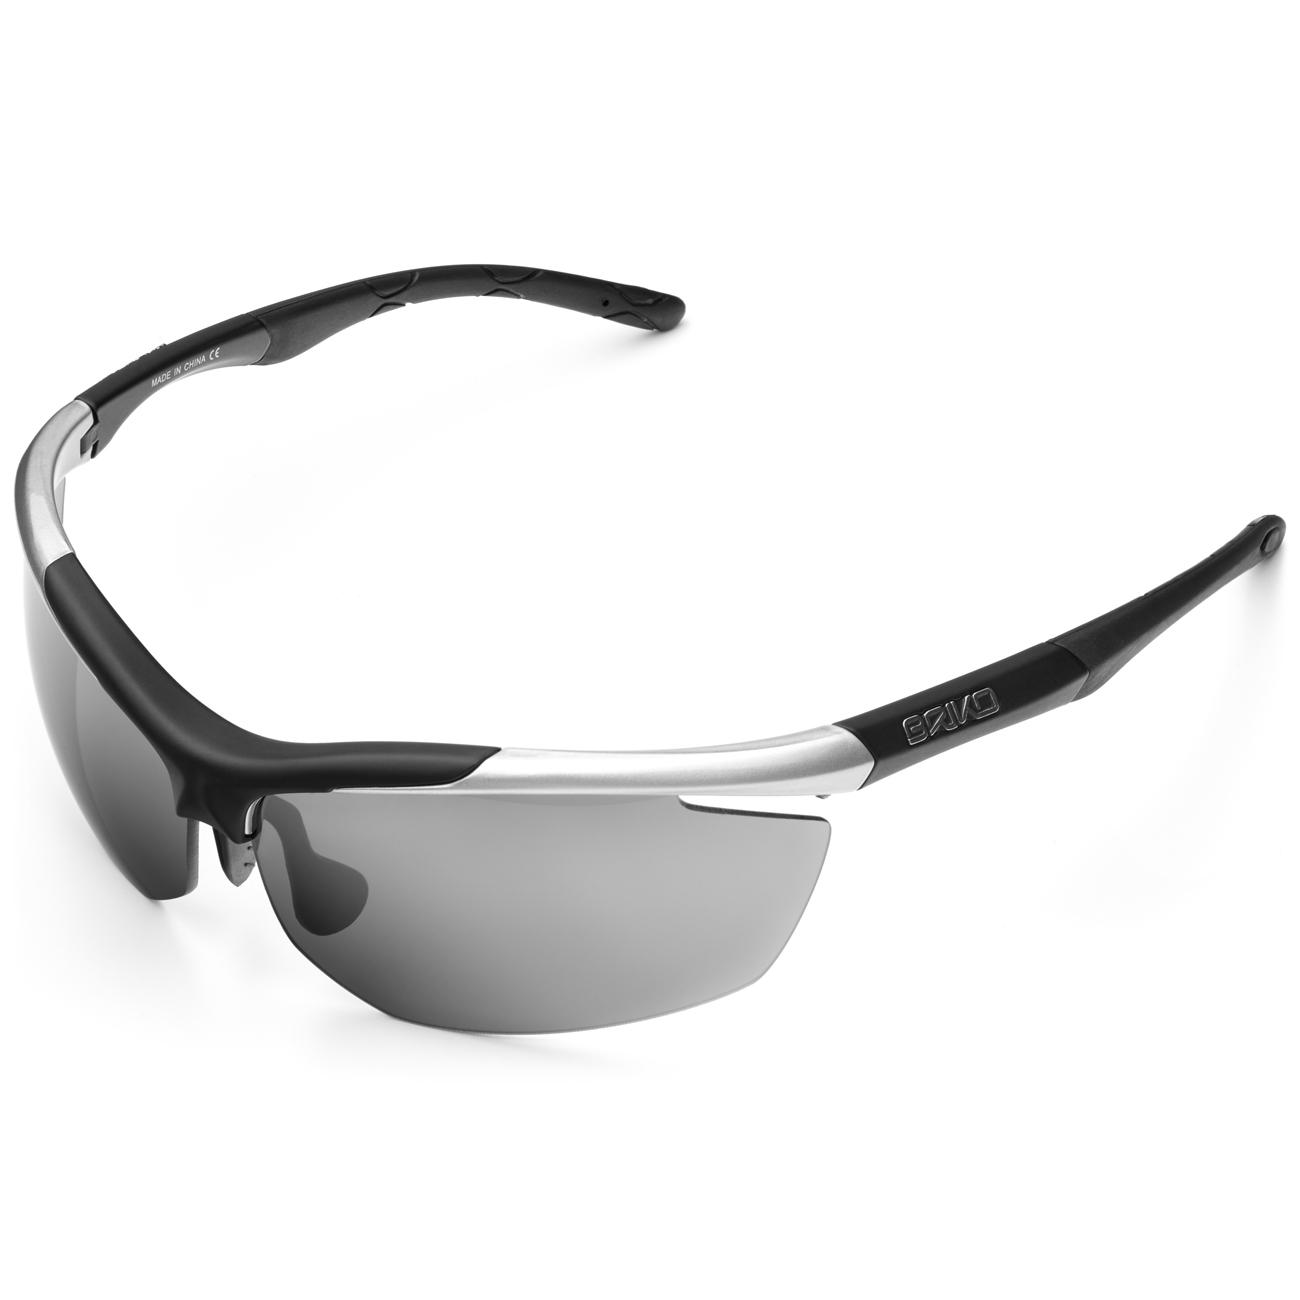 Briko Fiets zonnebril unisex Zilver Zwart - Trident Glasses With 2 Lenses Silver BLK- SM3TO